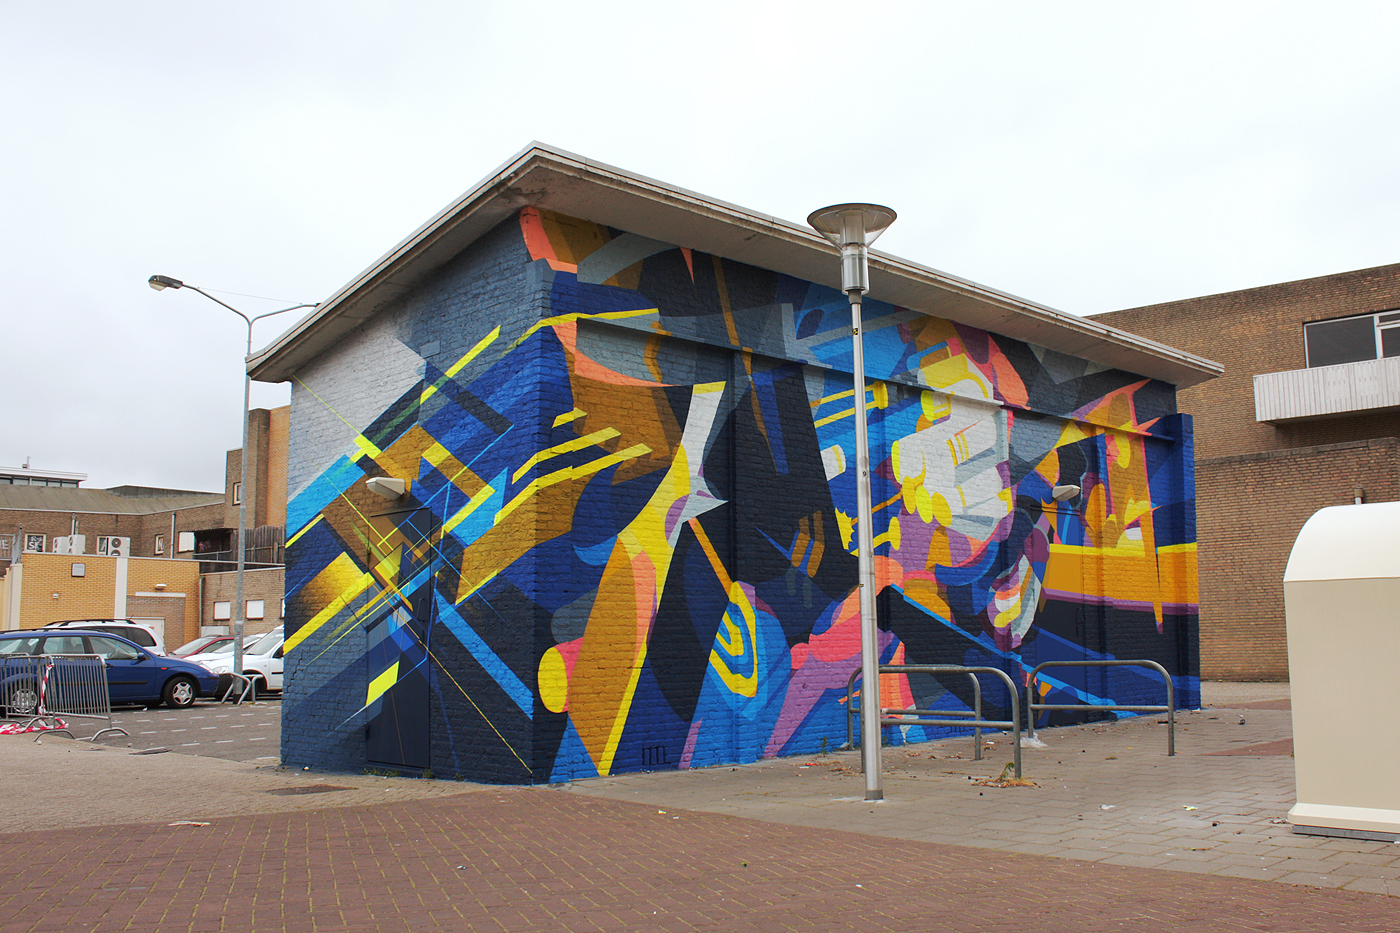 satone-nawer-new-mural-in-eindhoven-01